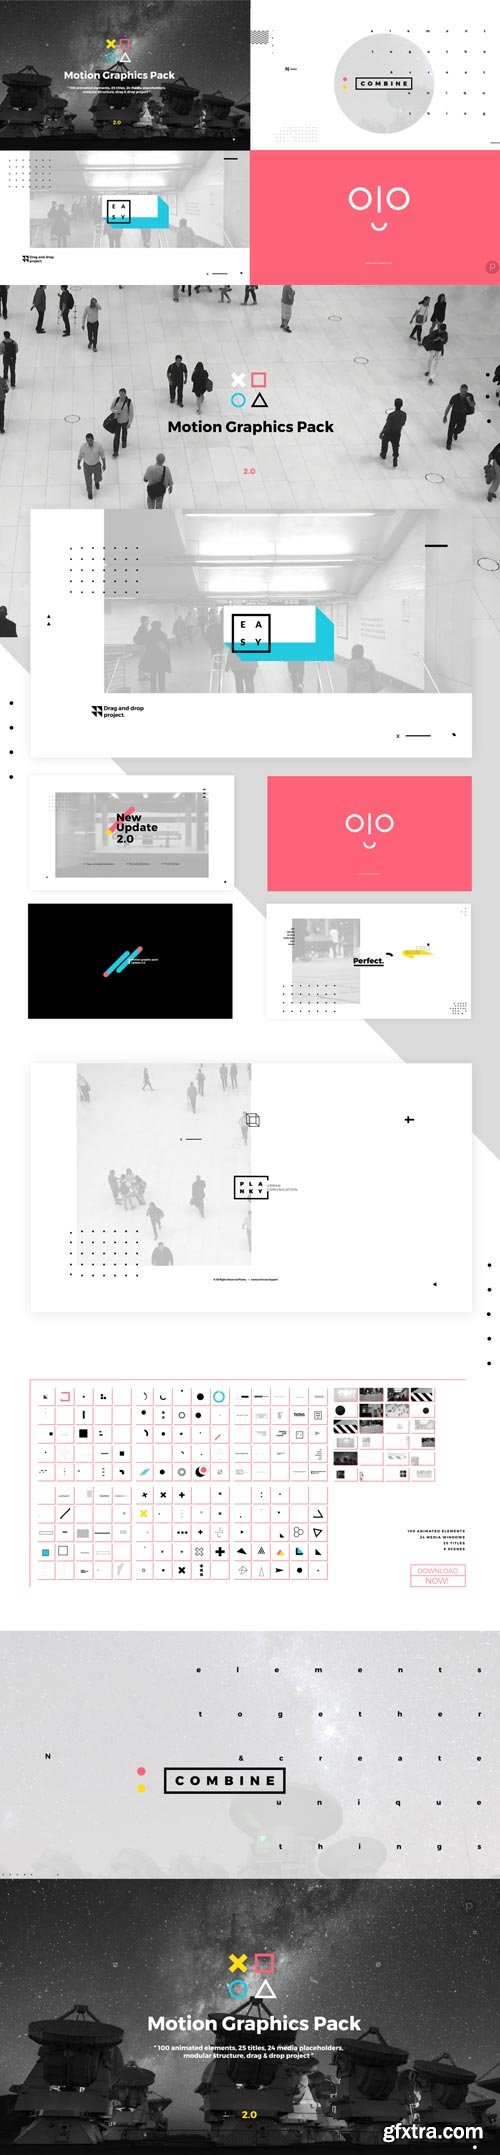 Videohive - Motion Graphics Pack - 19587884